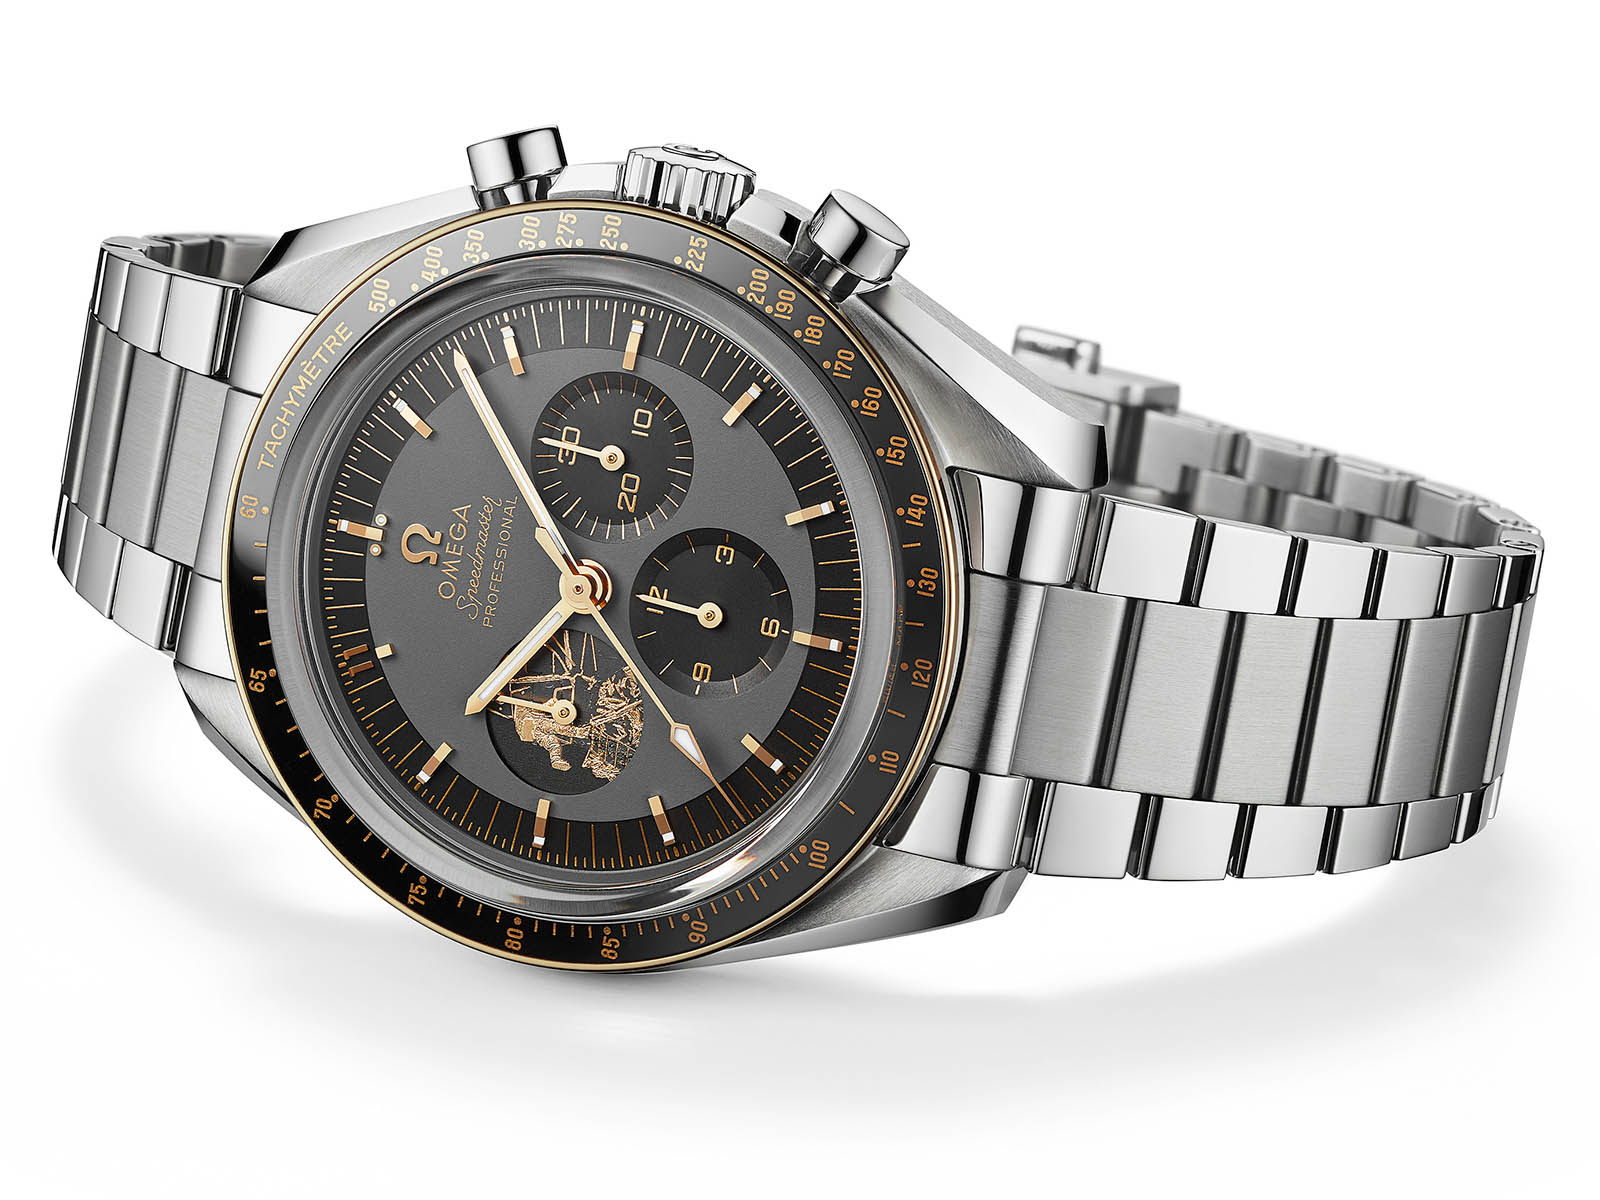 310-20-42-50-01-001-omega-speedmaster-apollo-11-50th-anniversary-limited-edition-2.jpg